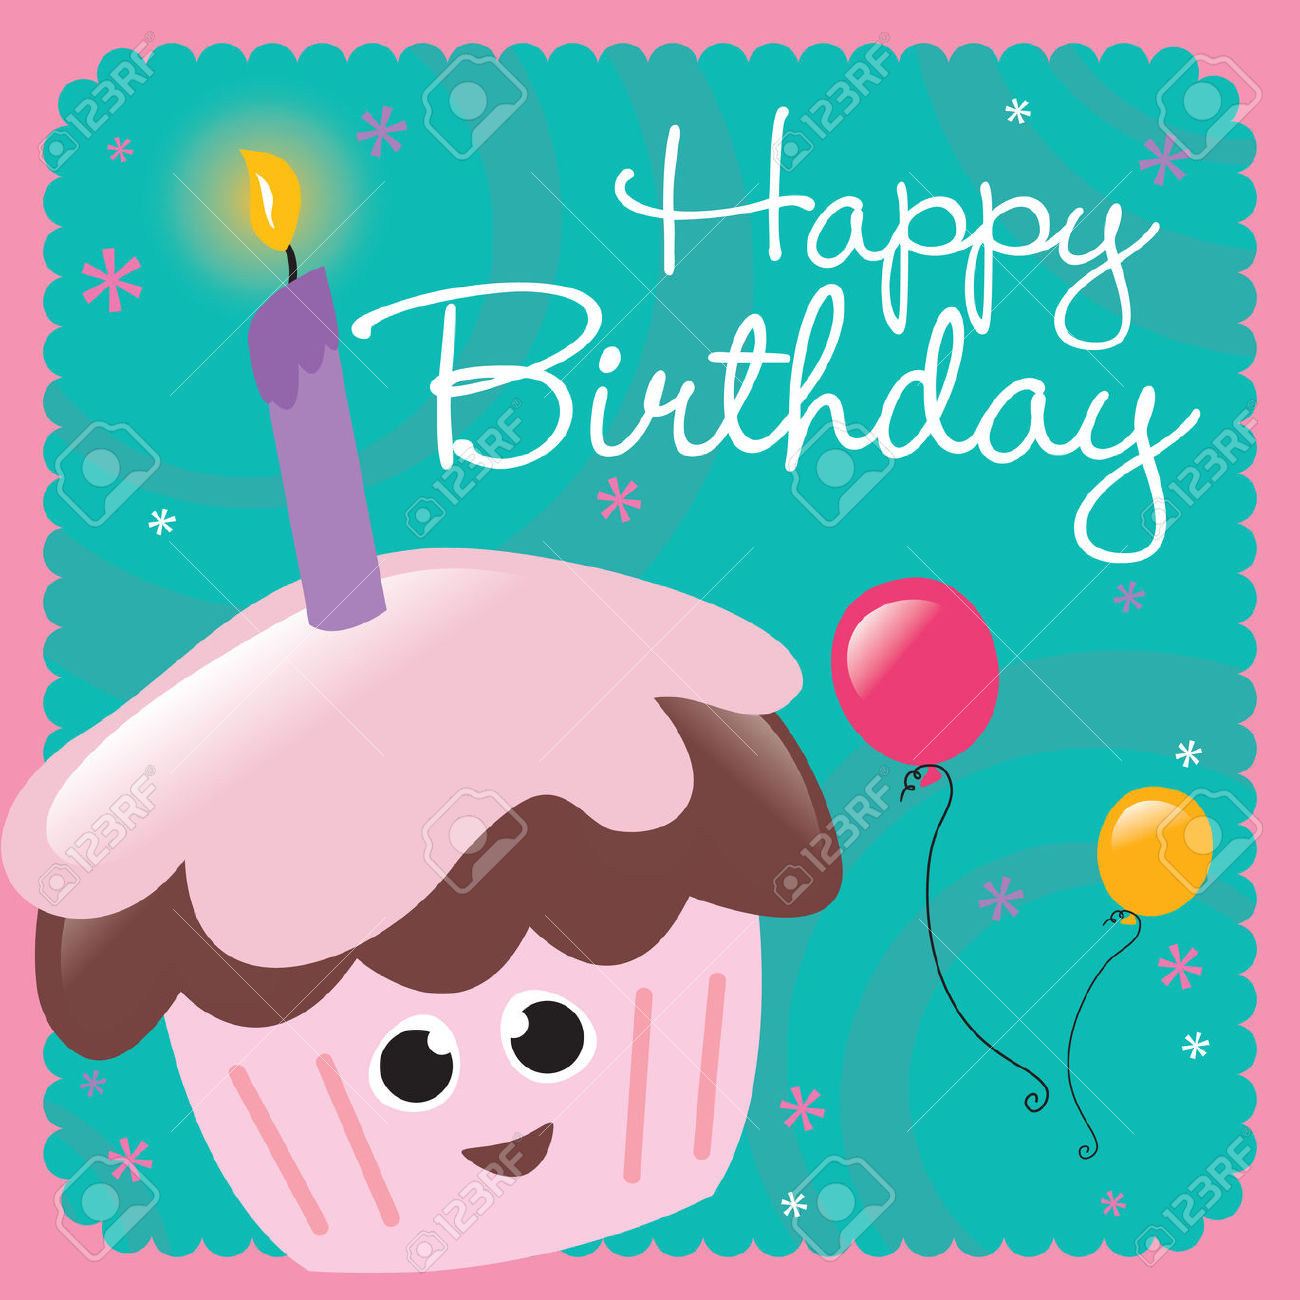 birthday greetings clipart ; card-happy-birthday-clipart-1